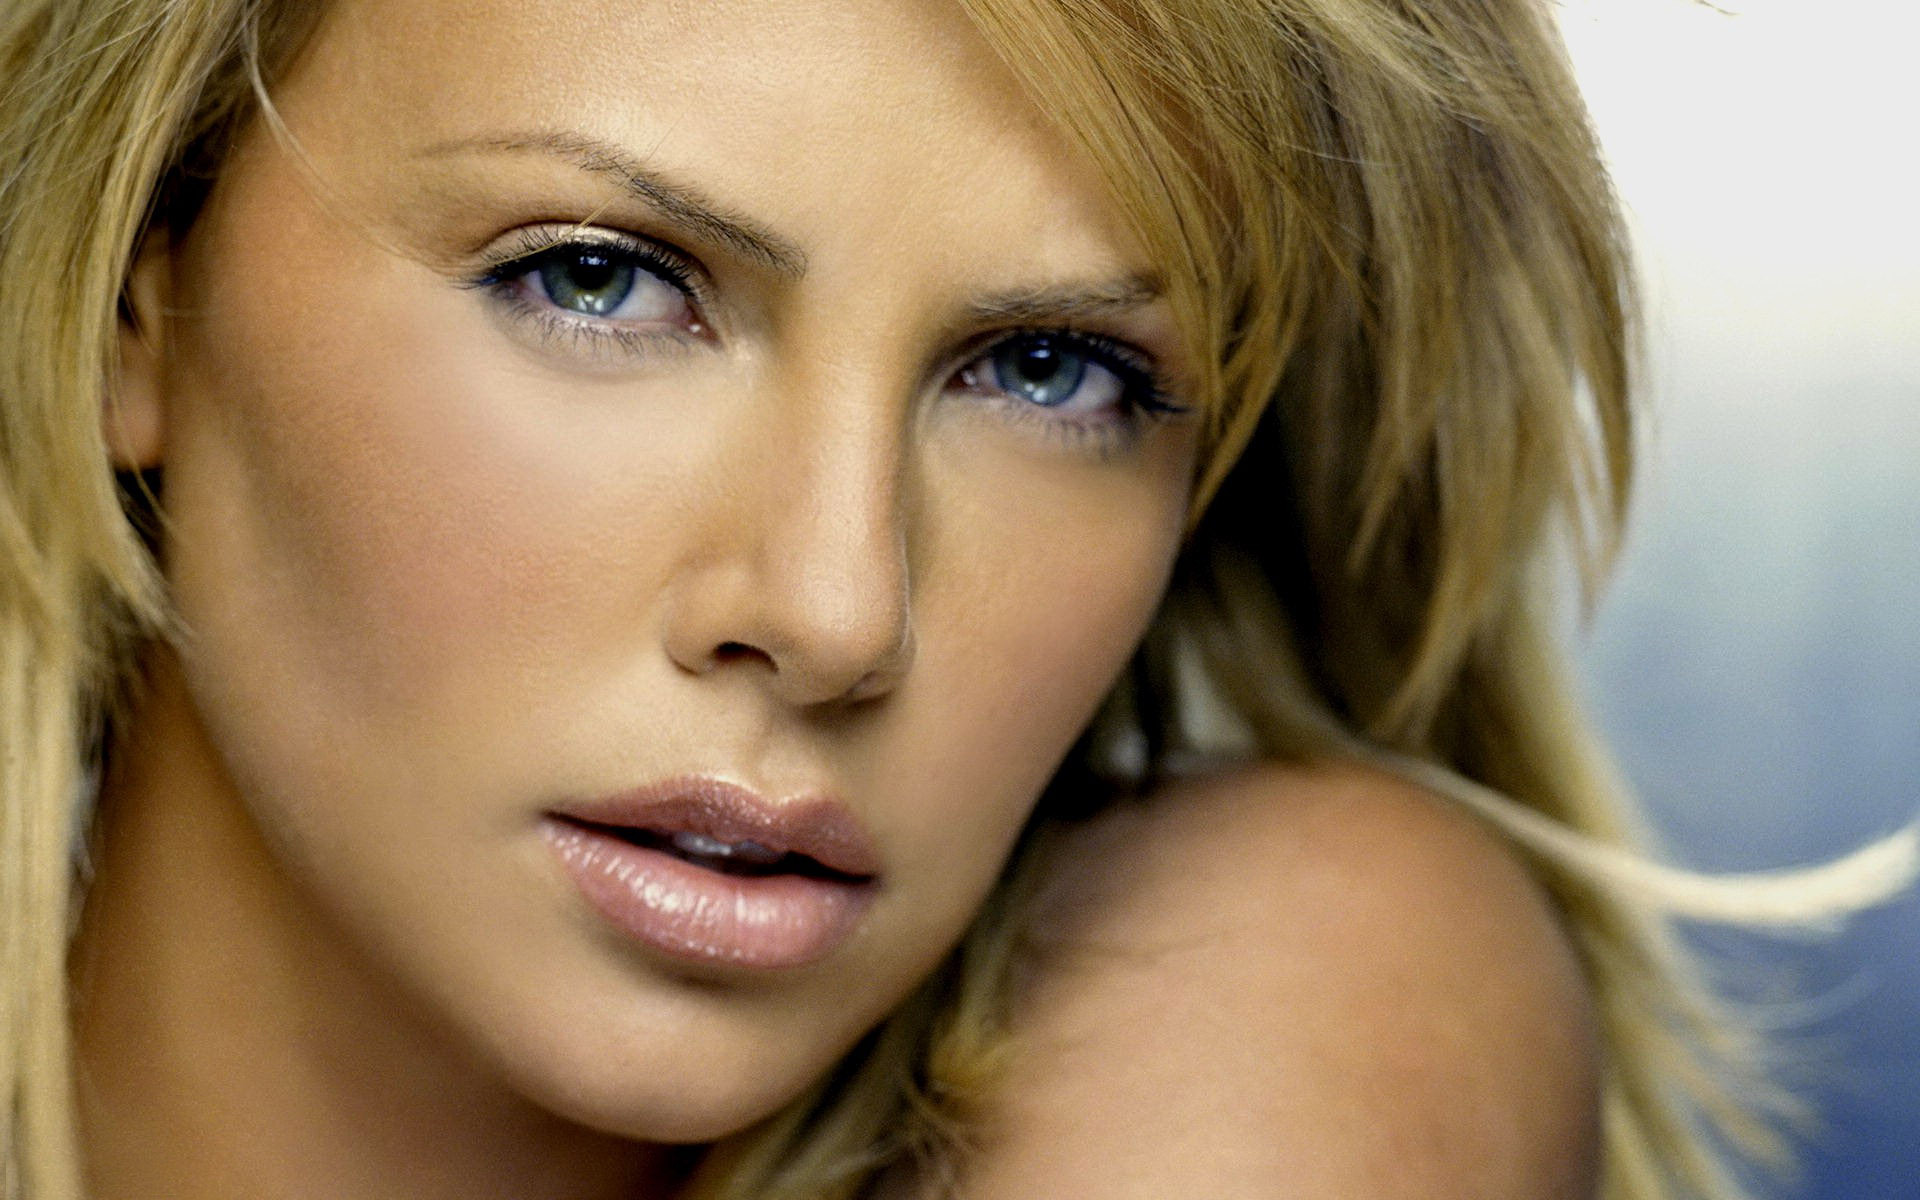 Charlize Theron beautiful eyes sexy eyes Pretty eyes images